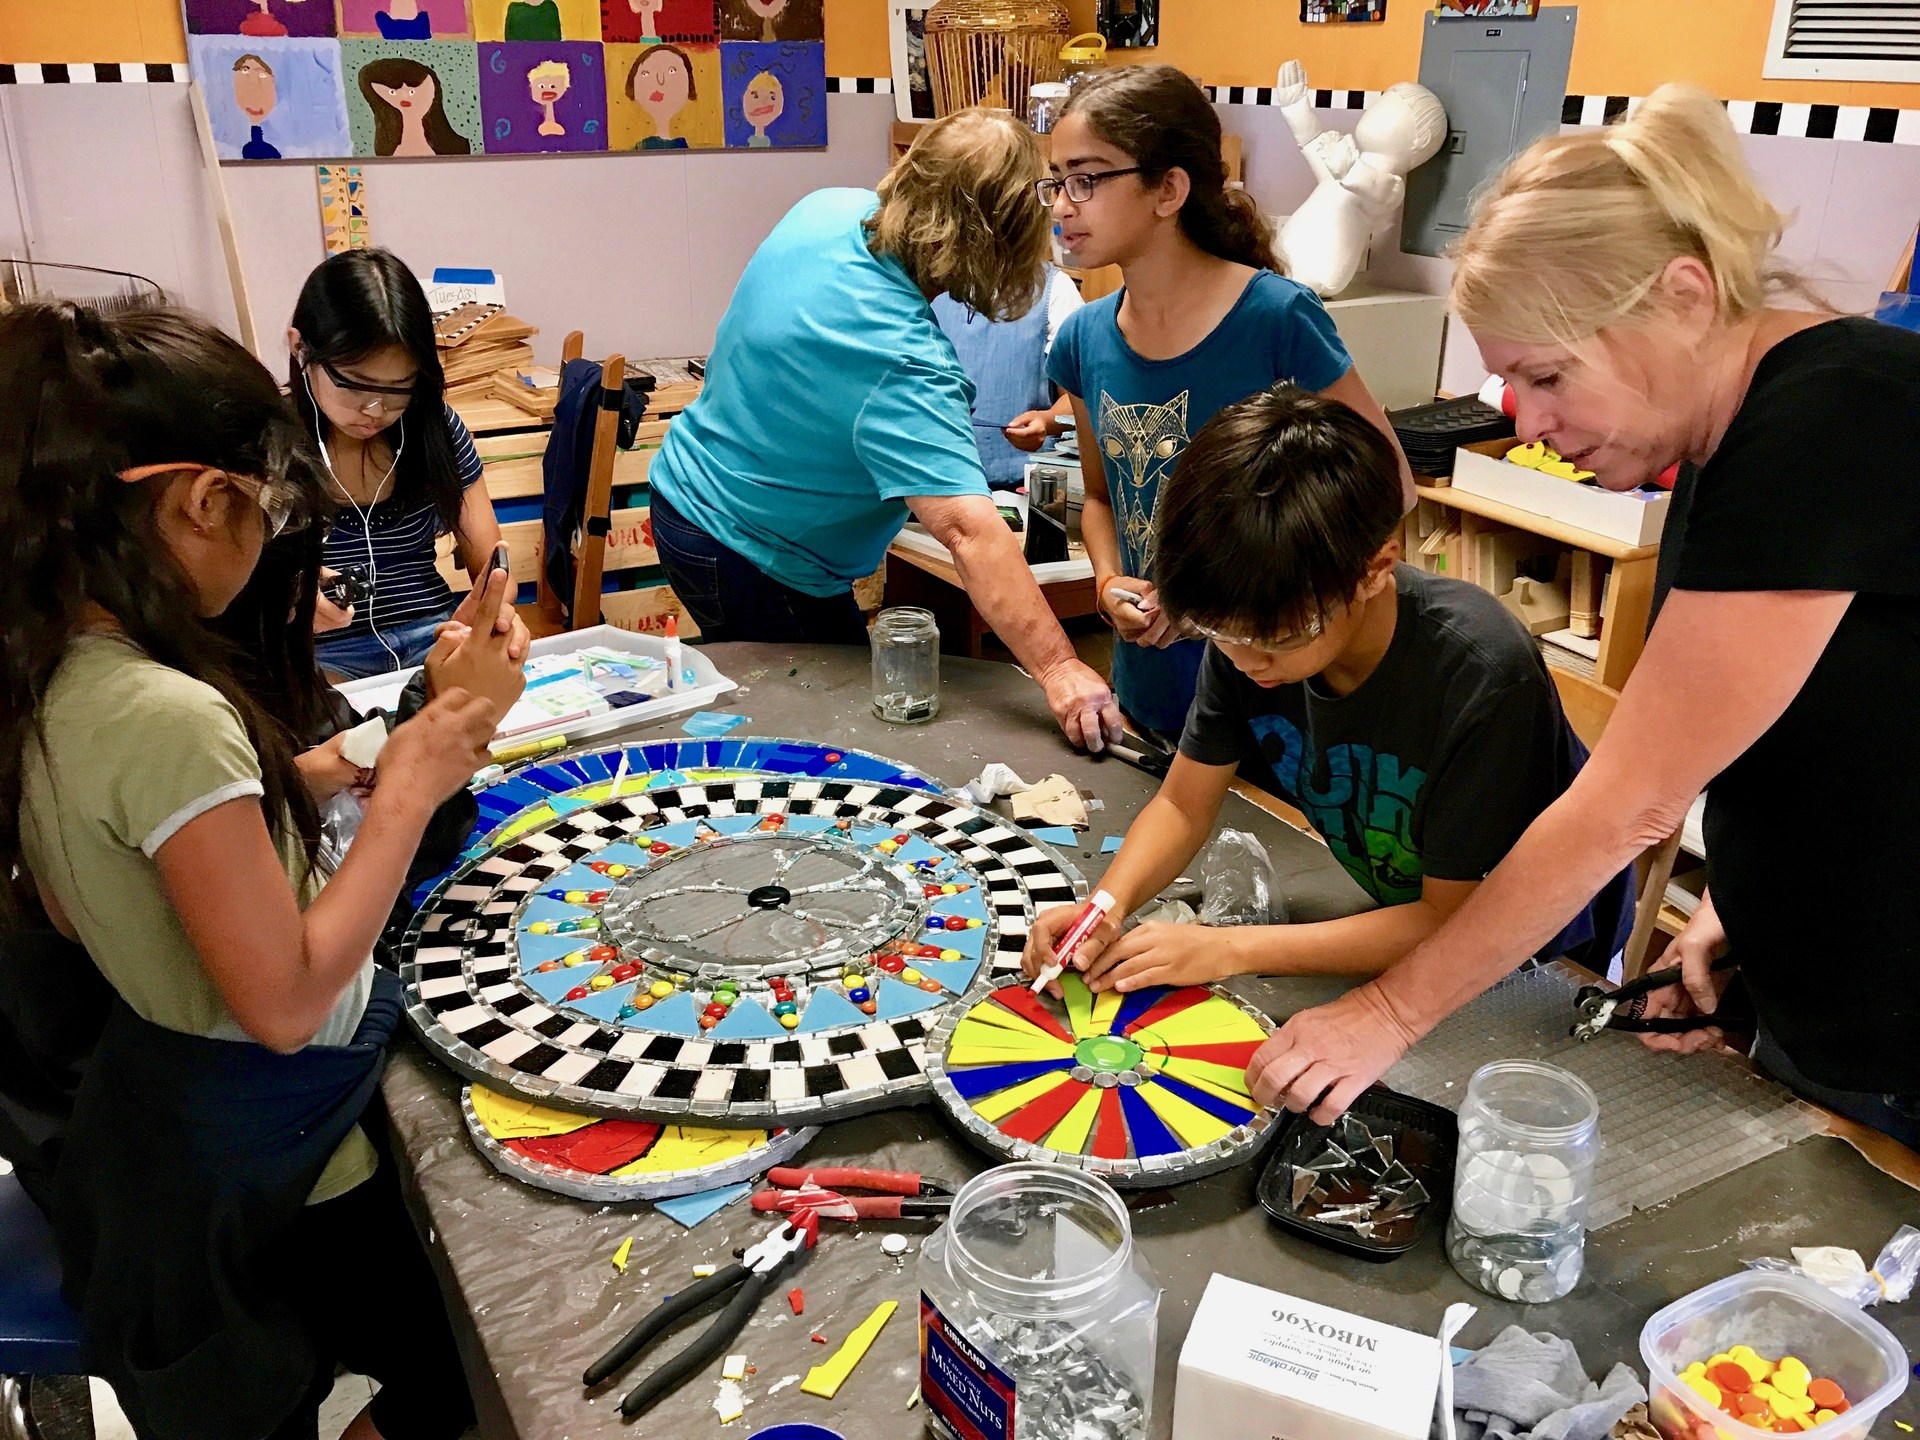 Students working on a mosaic project.